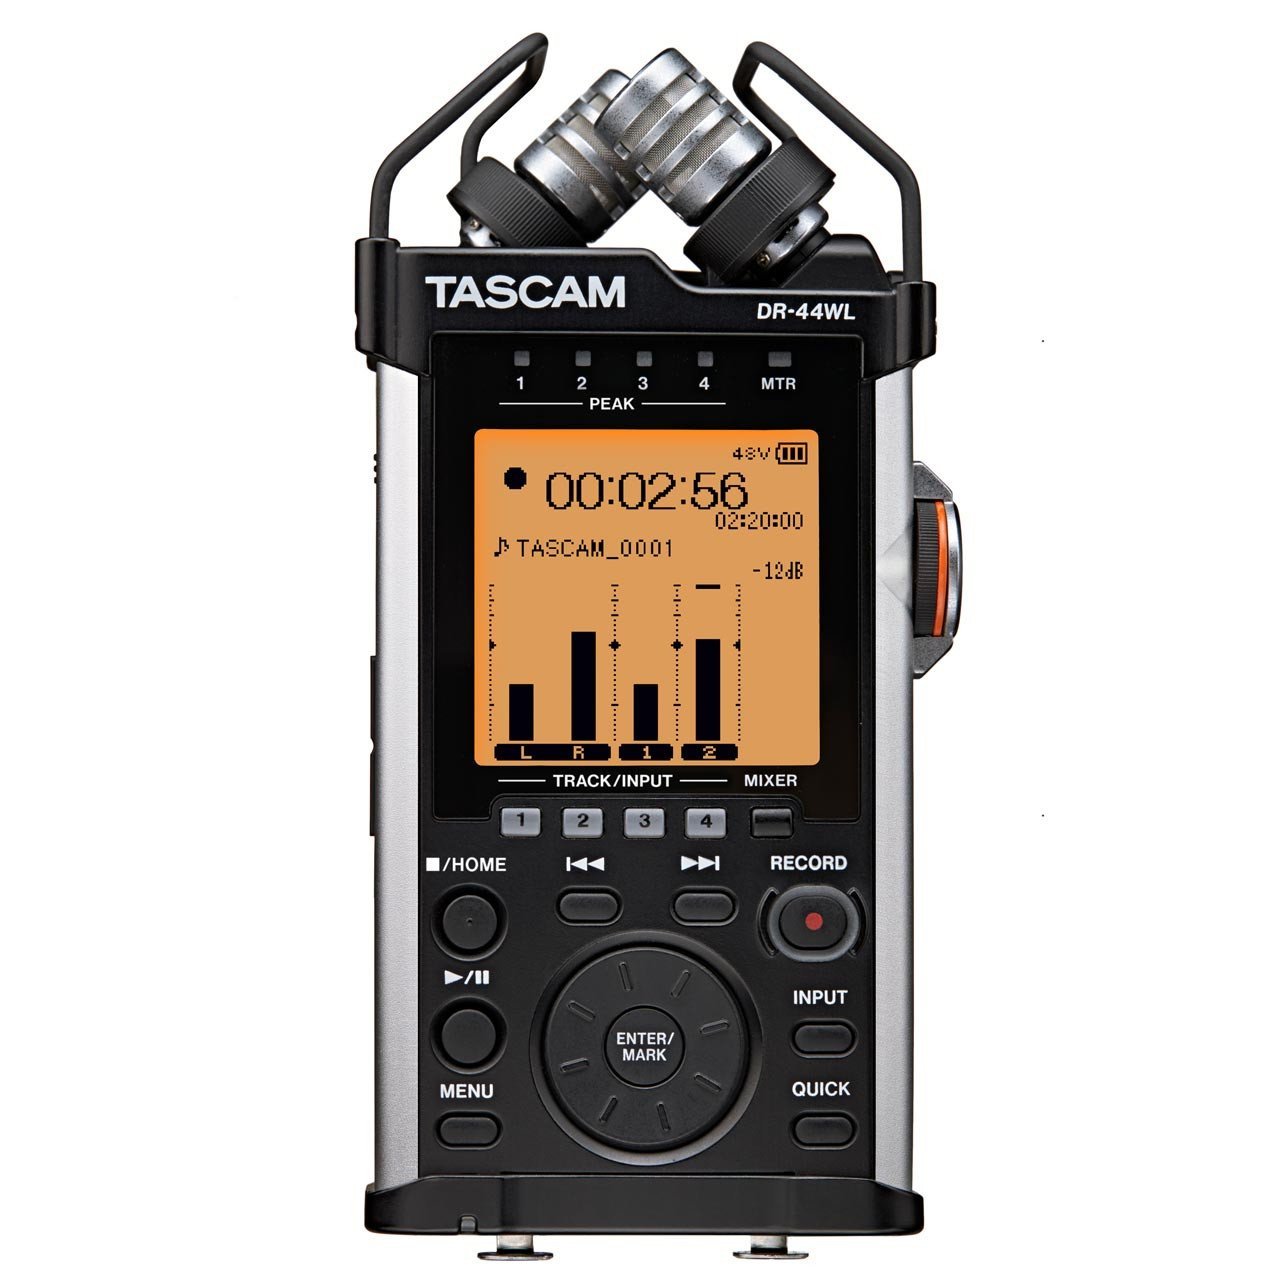 Portable Recorder - Tascam DR-44WL Handheld Digital Recorder With WIFI